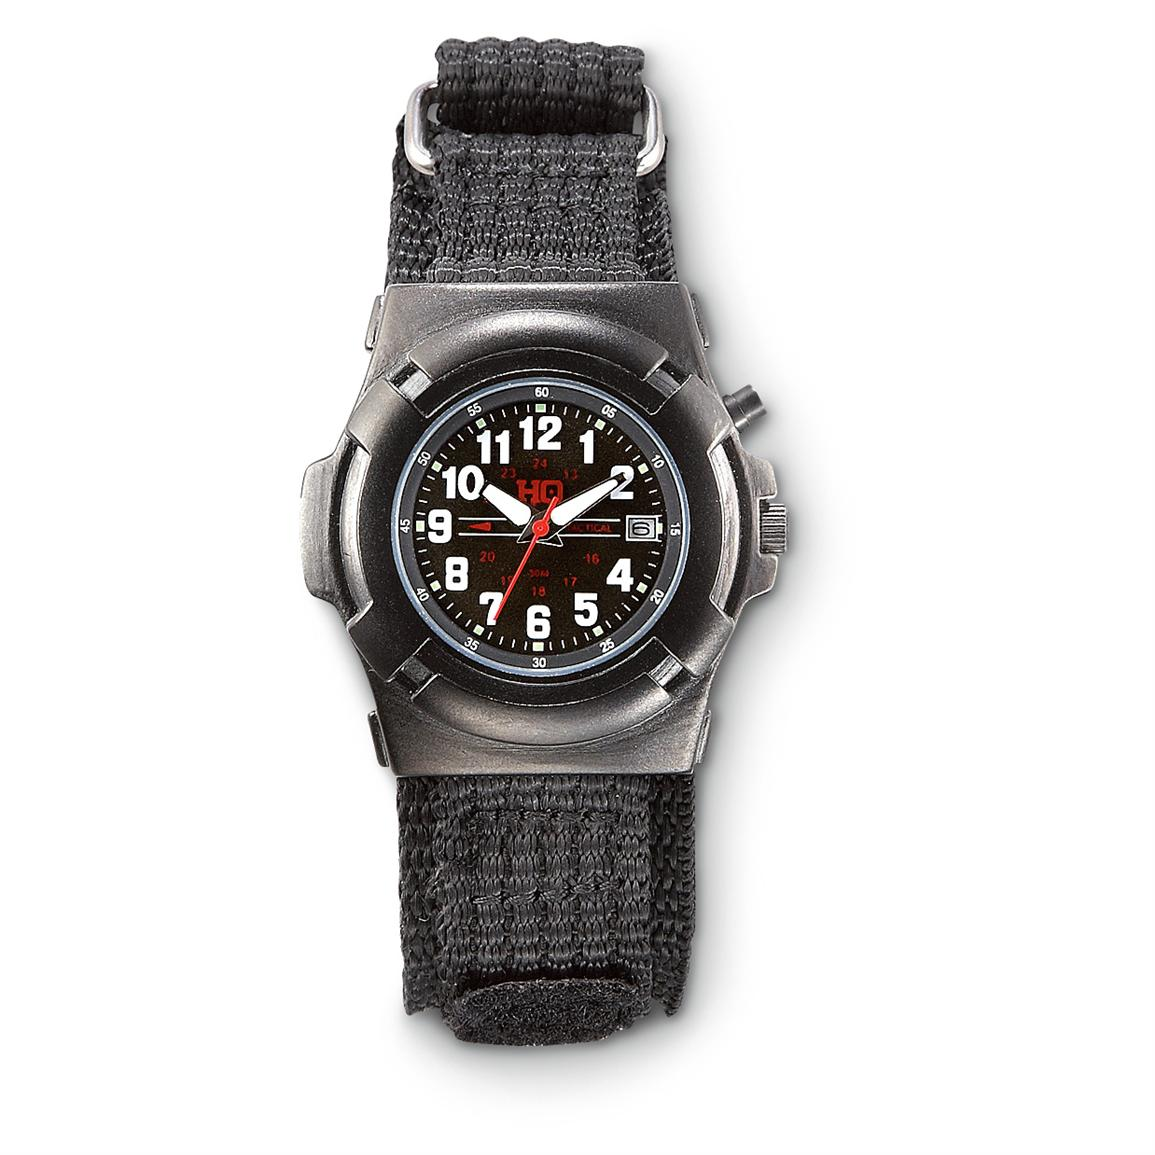 HQ ISSUE Tactical Watch, Black